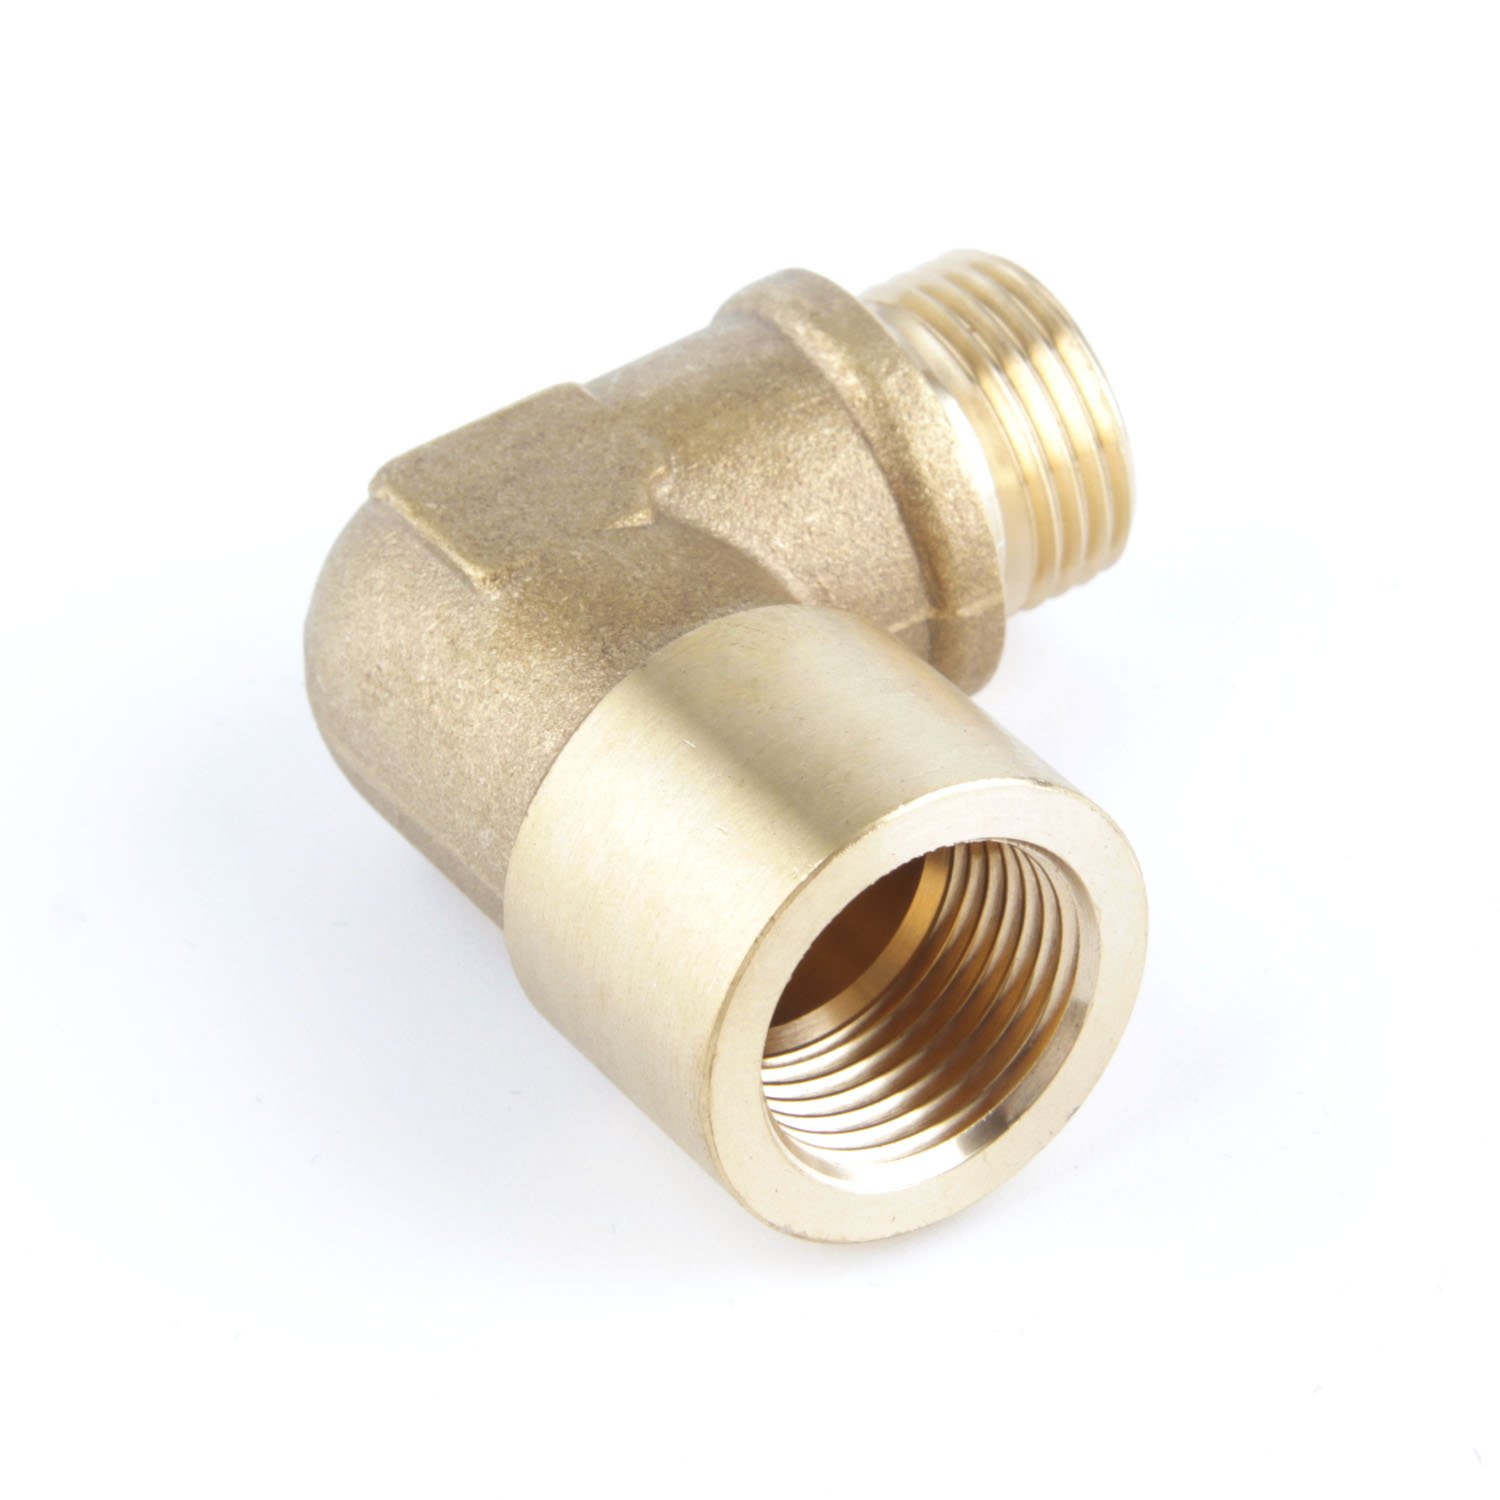 Alamor 6mm 8mm 10mm 12mm Brass T Piece 3 Way Fuel Hose Joiner Connector For Air Oil Gas-6mm